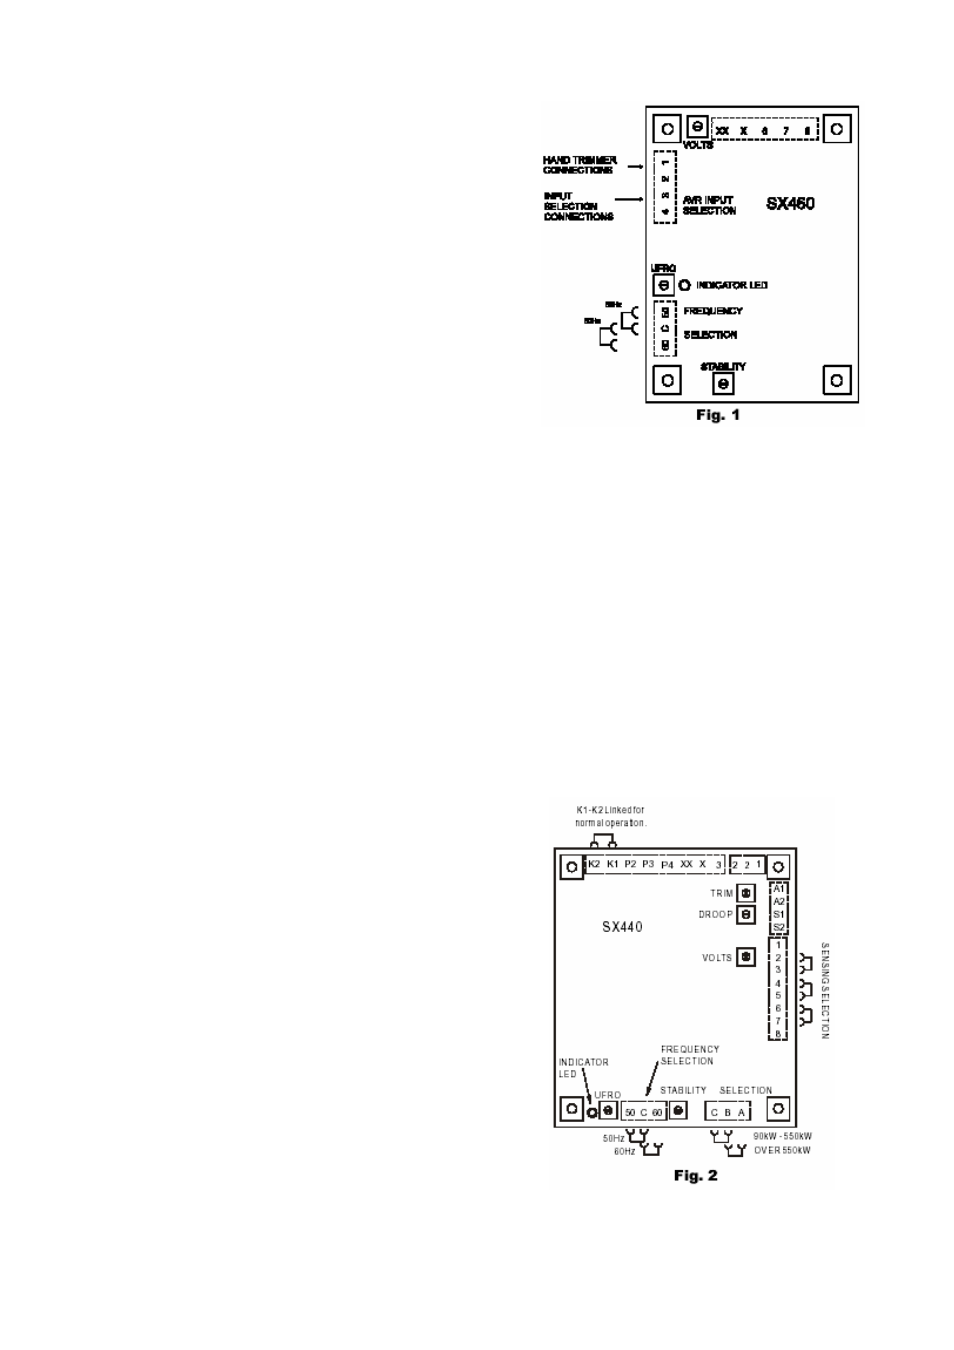 pi manufacturing ac generators page12 pi manufacturing ac generators user manual page 12 43 stamford avr mx341 wiring diagram at virtualis.co